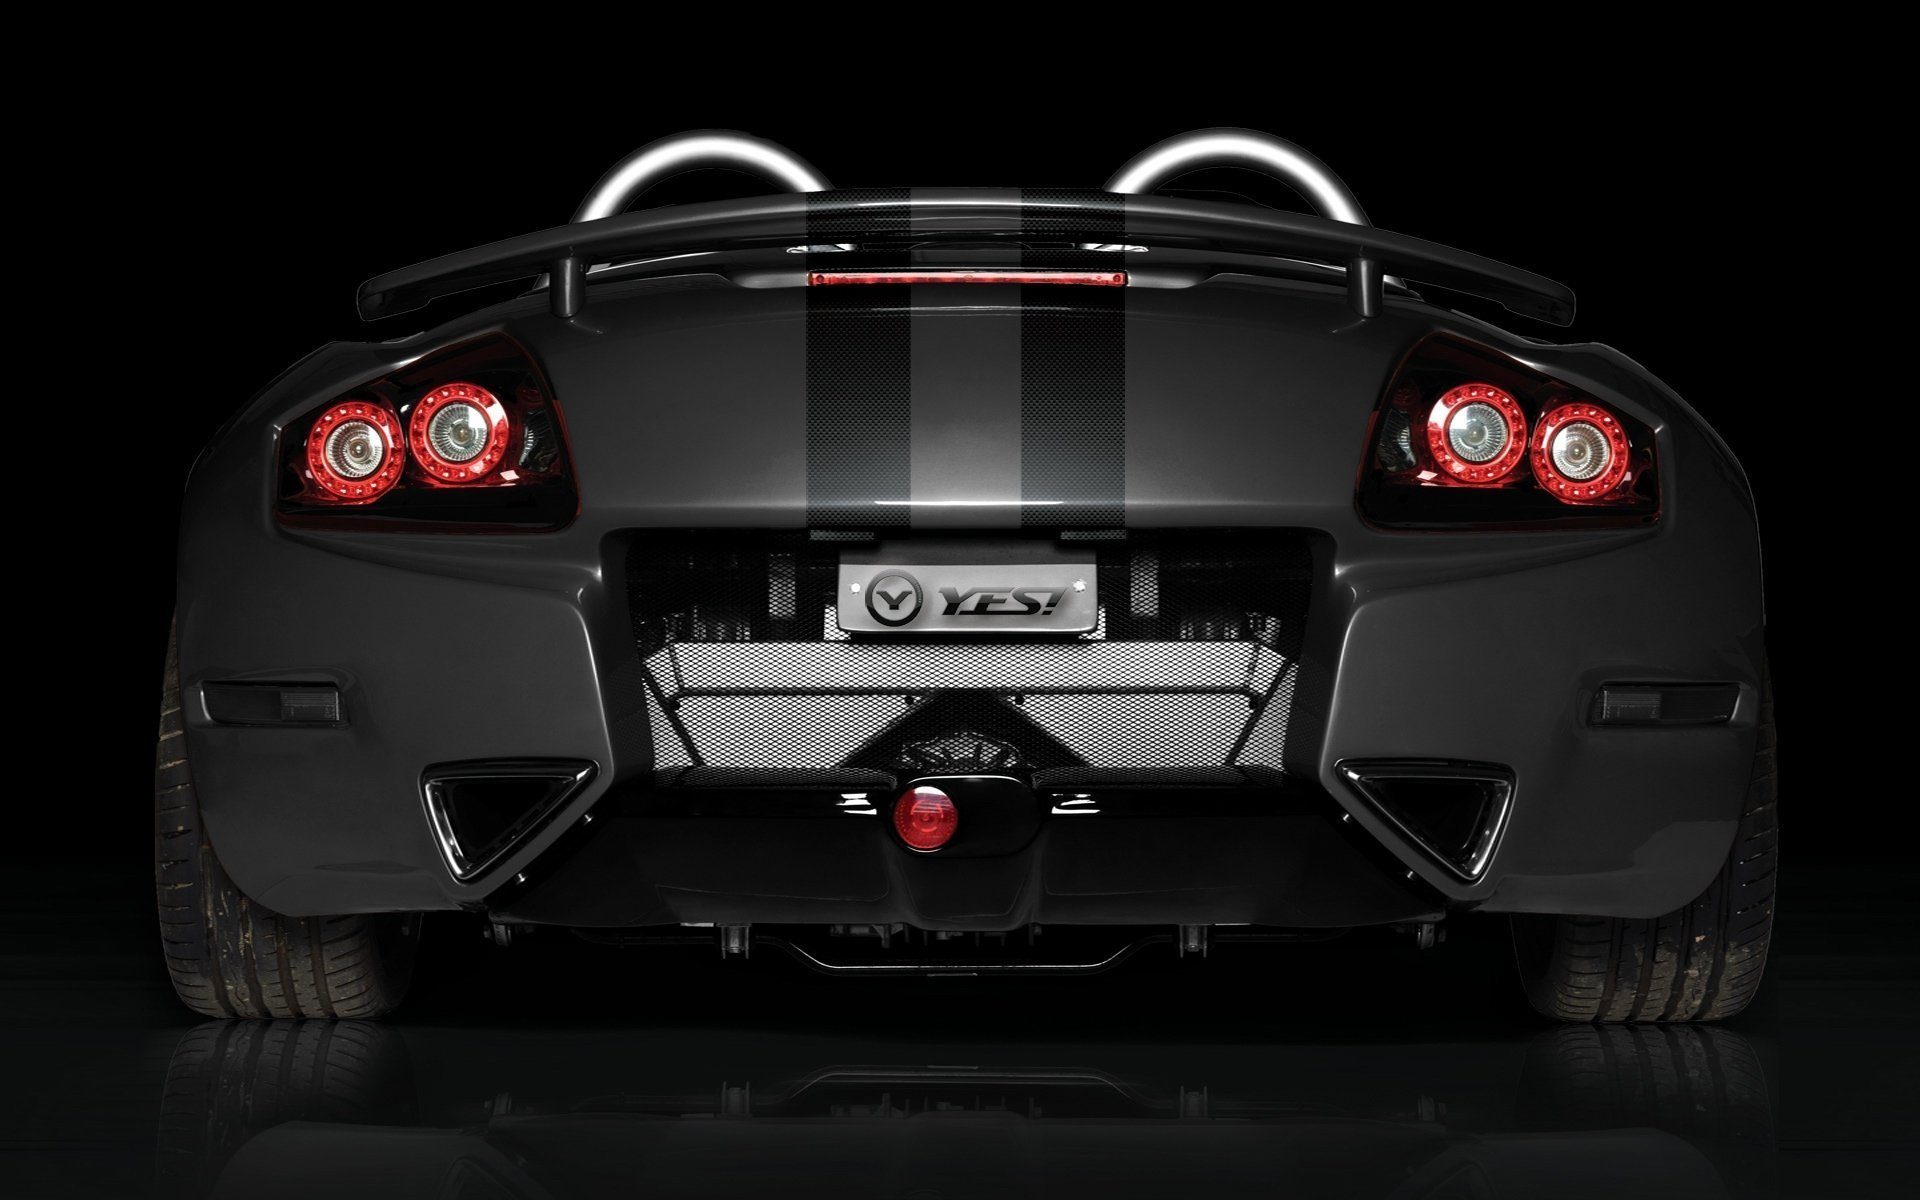 New Yes Roadster 3 2 Turbo Back Hd Wallpaper Background On This Month